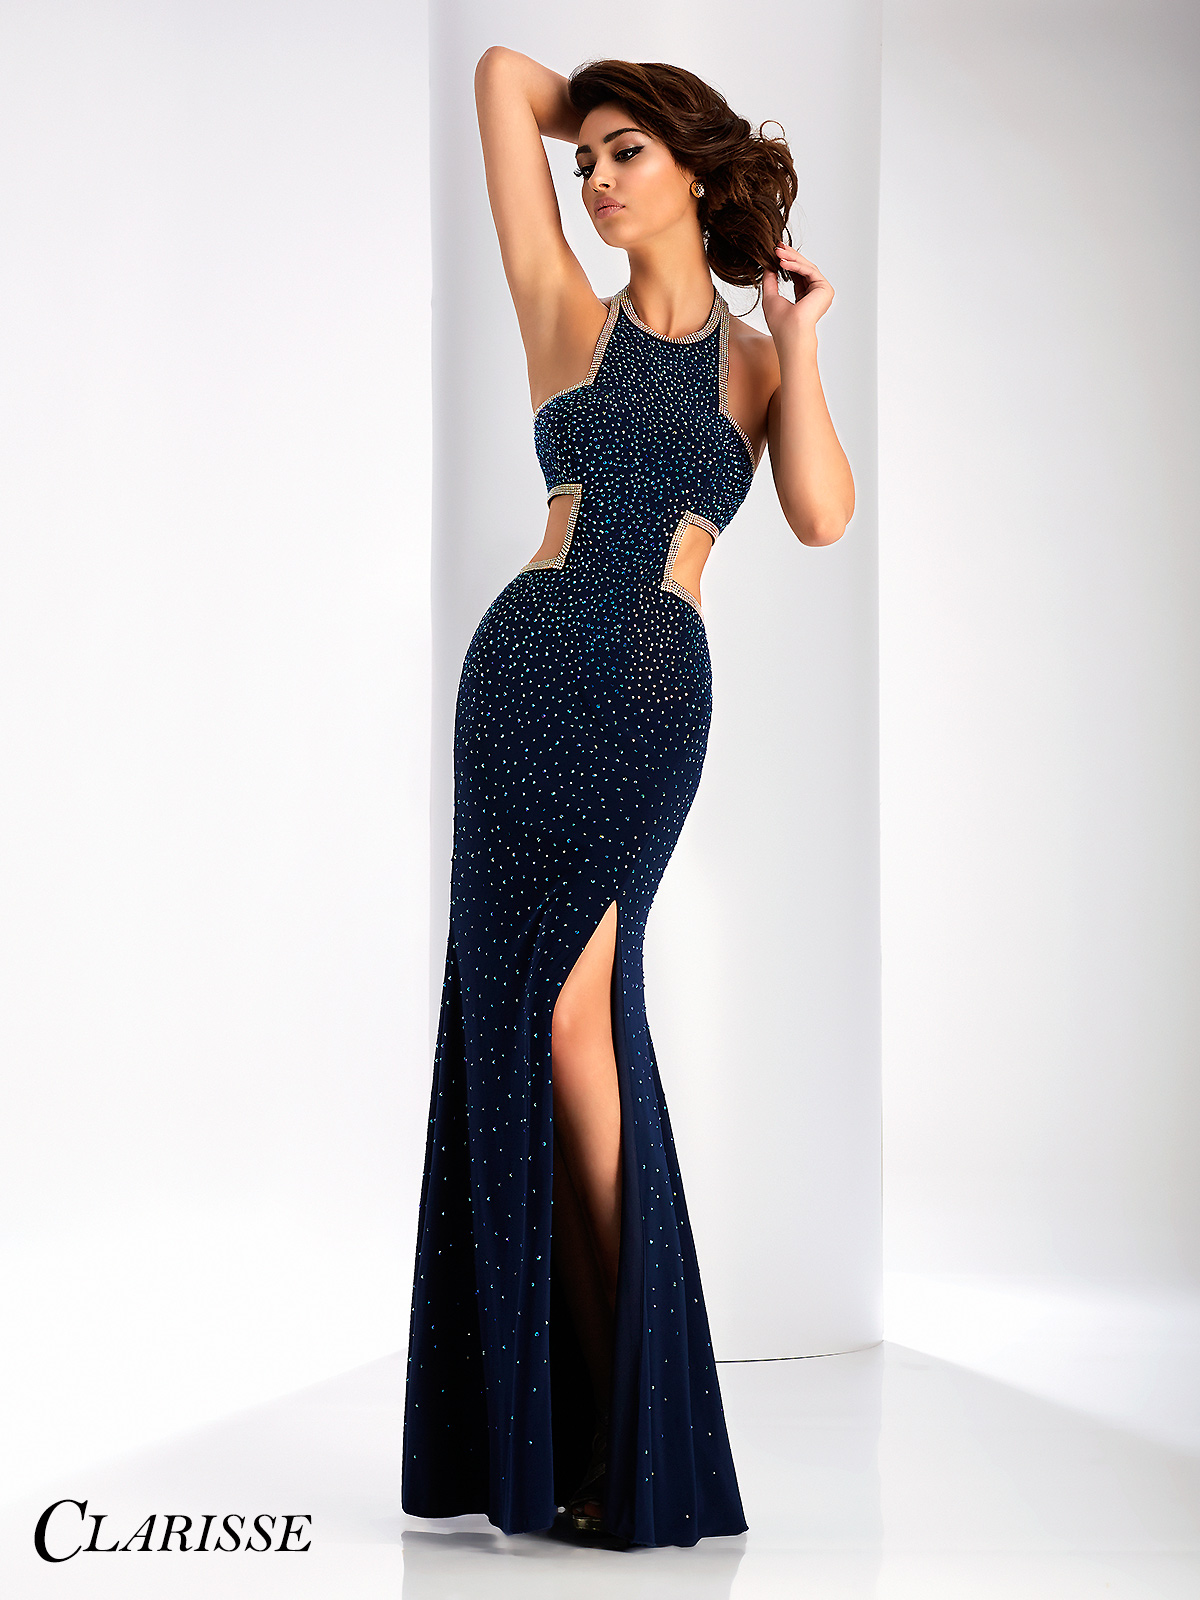 Clarisse Prom Dress 3088 | Promgirl.net